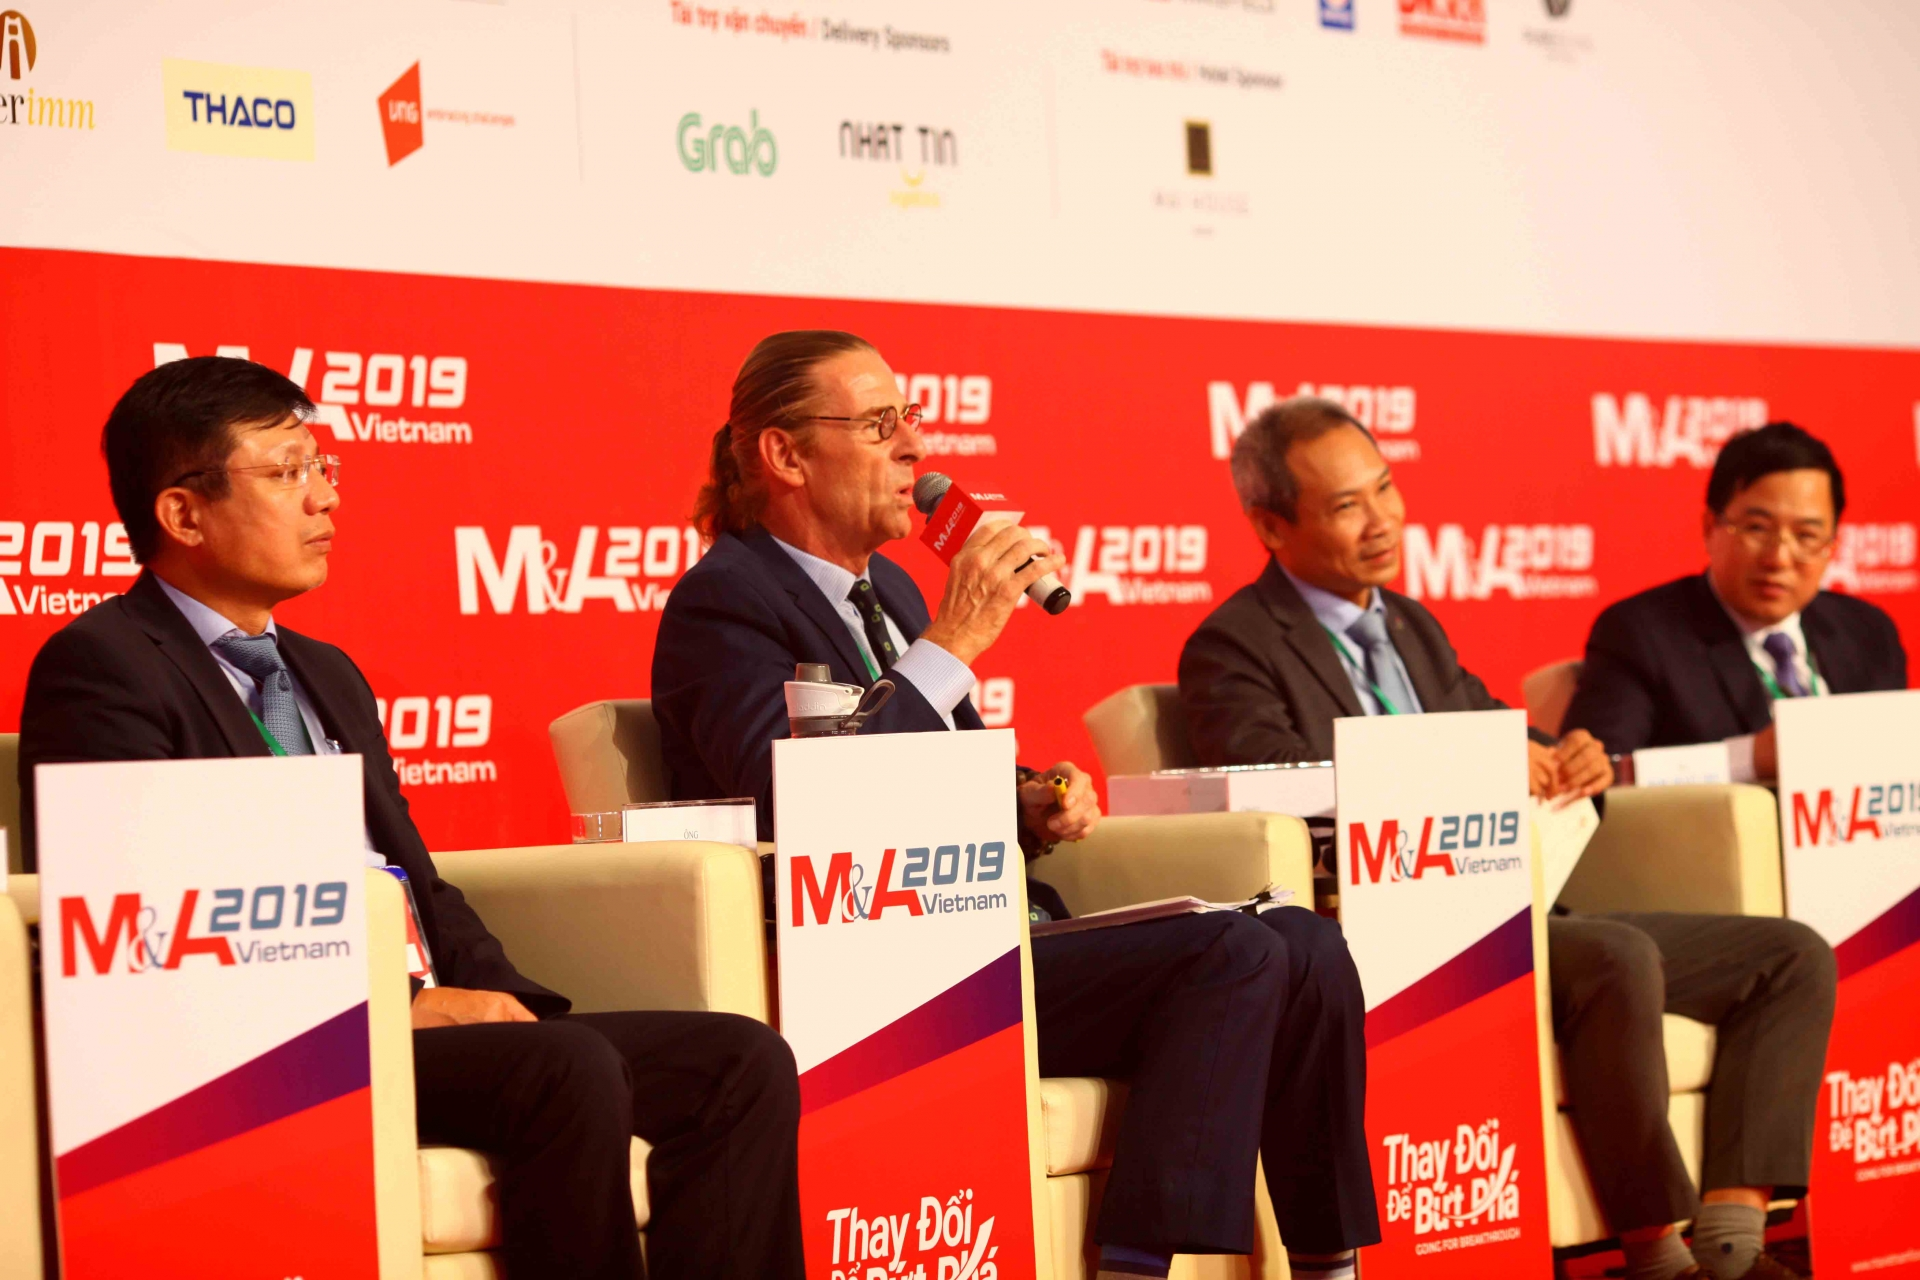 Policy reform is key to unlock Vietnam's M&A future